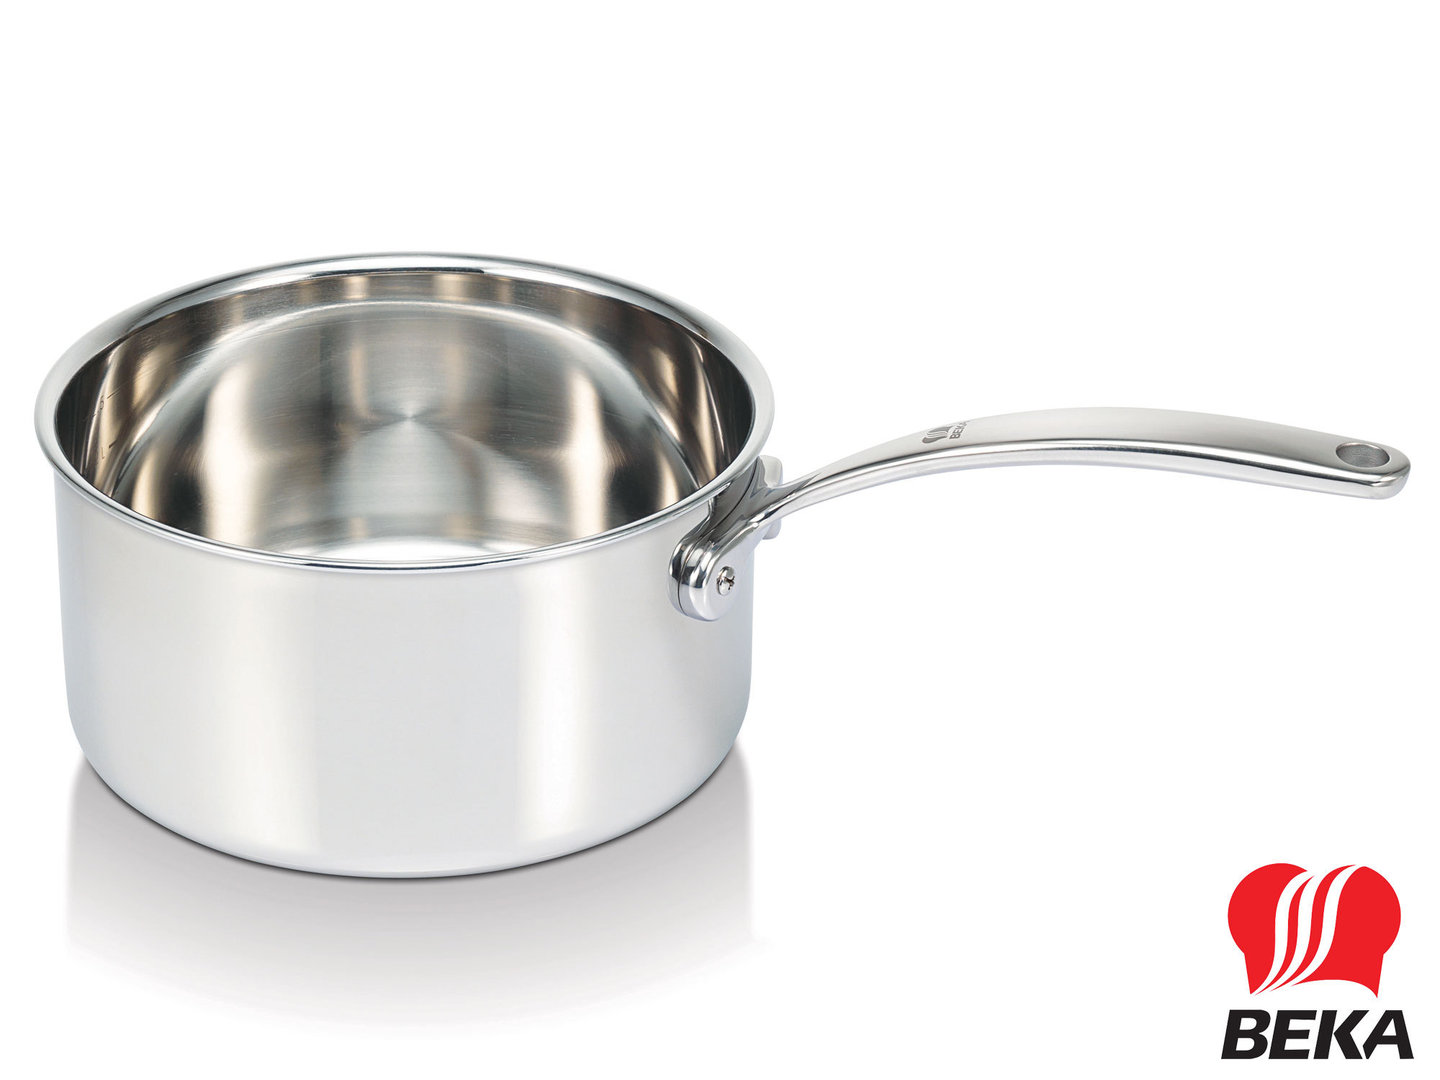 BEKA 3-ply stainless steel saucepot TRI-LUX 16 cm